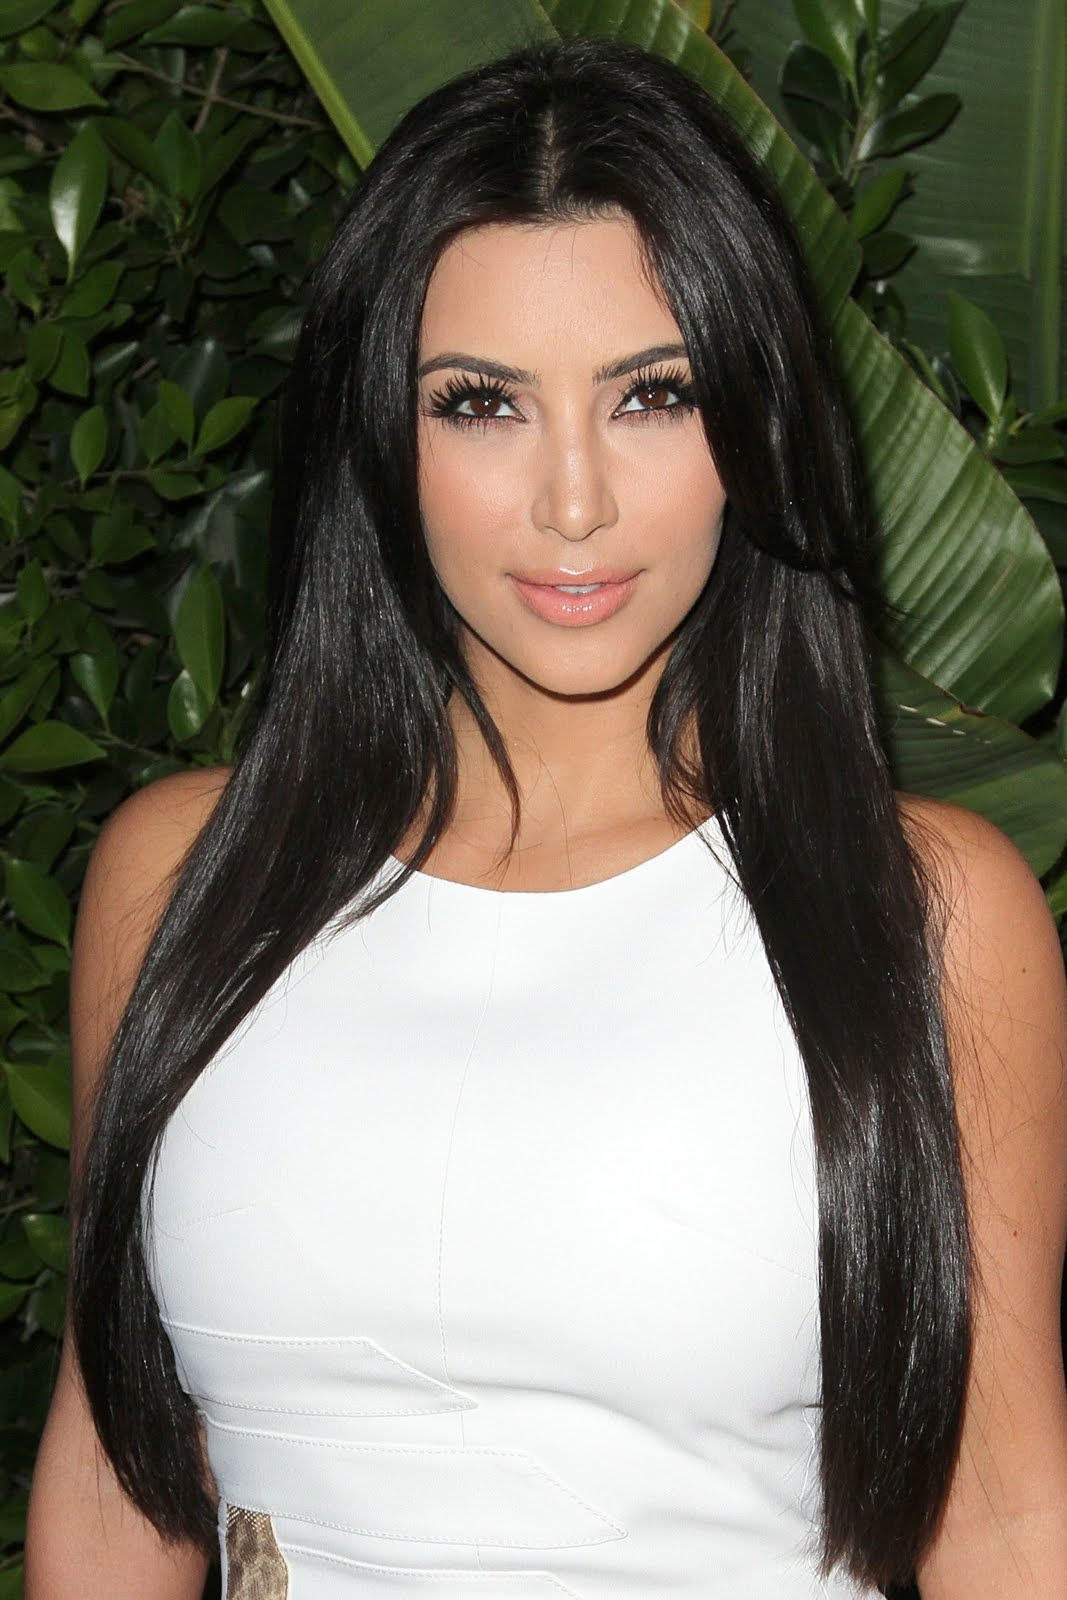 http://3.bp.blogspot.com/-zQY4QOgnzCw/TgVfJ2N5UXI/AAAAAAAALCs/4yB_riaCIcg/s1600/latest-kim-kardashian-photo-2011-sexy-tight-white-dress+%25283%2529.jpg